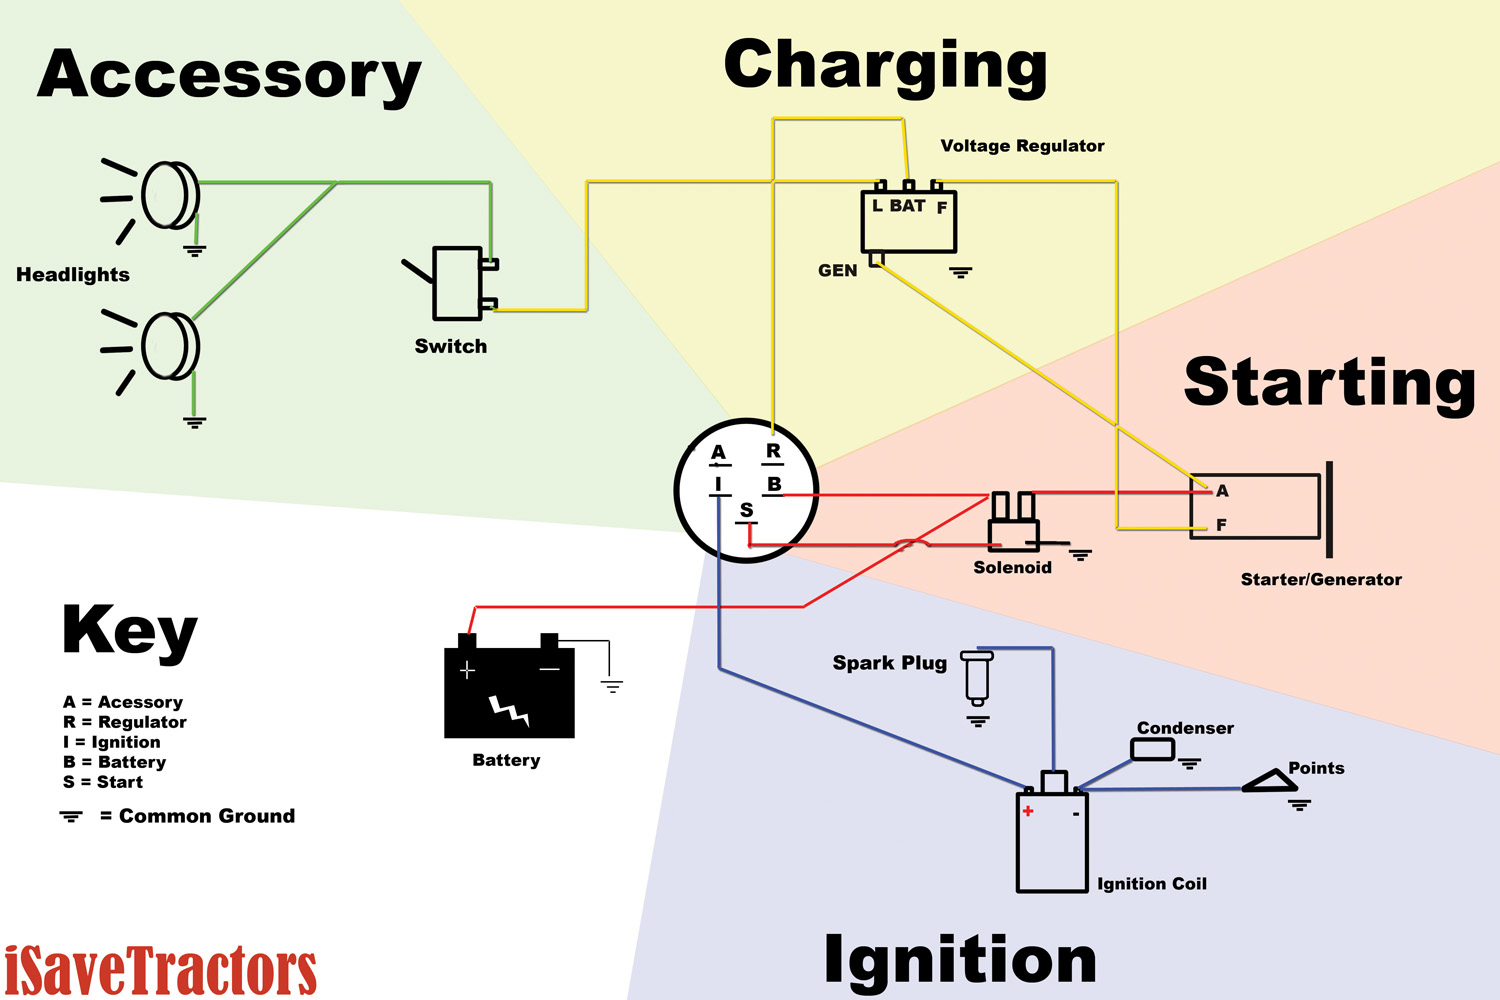 Kohler Ch20S Wiring Diagram | Wiring Library - Kohler Voltage Regulator Wiring Diagram